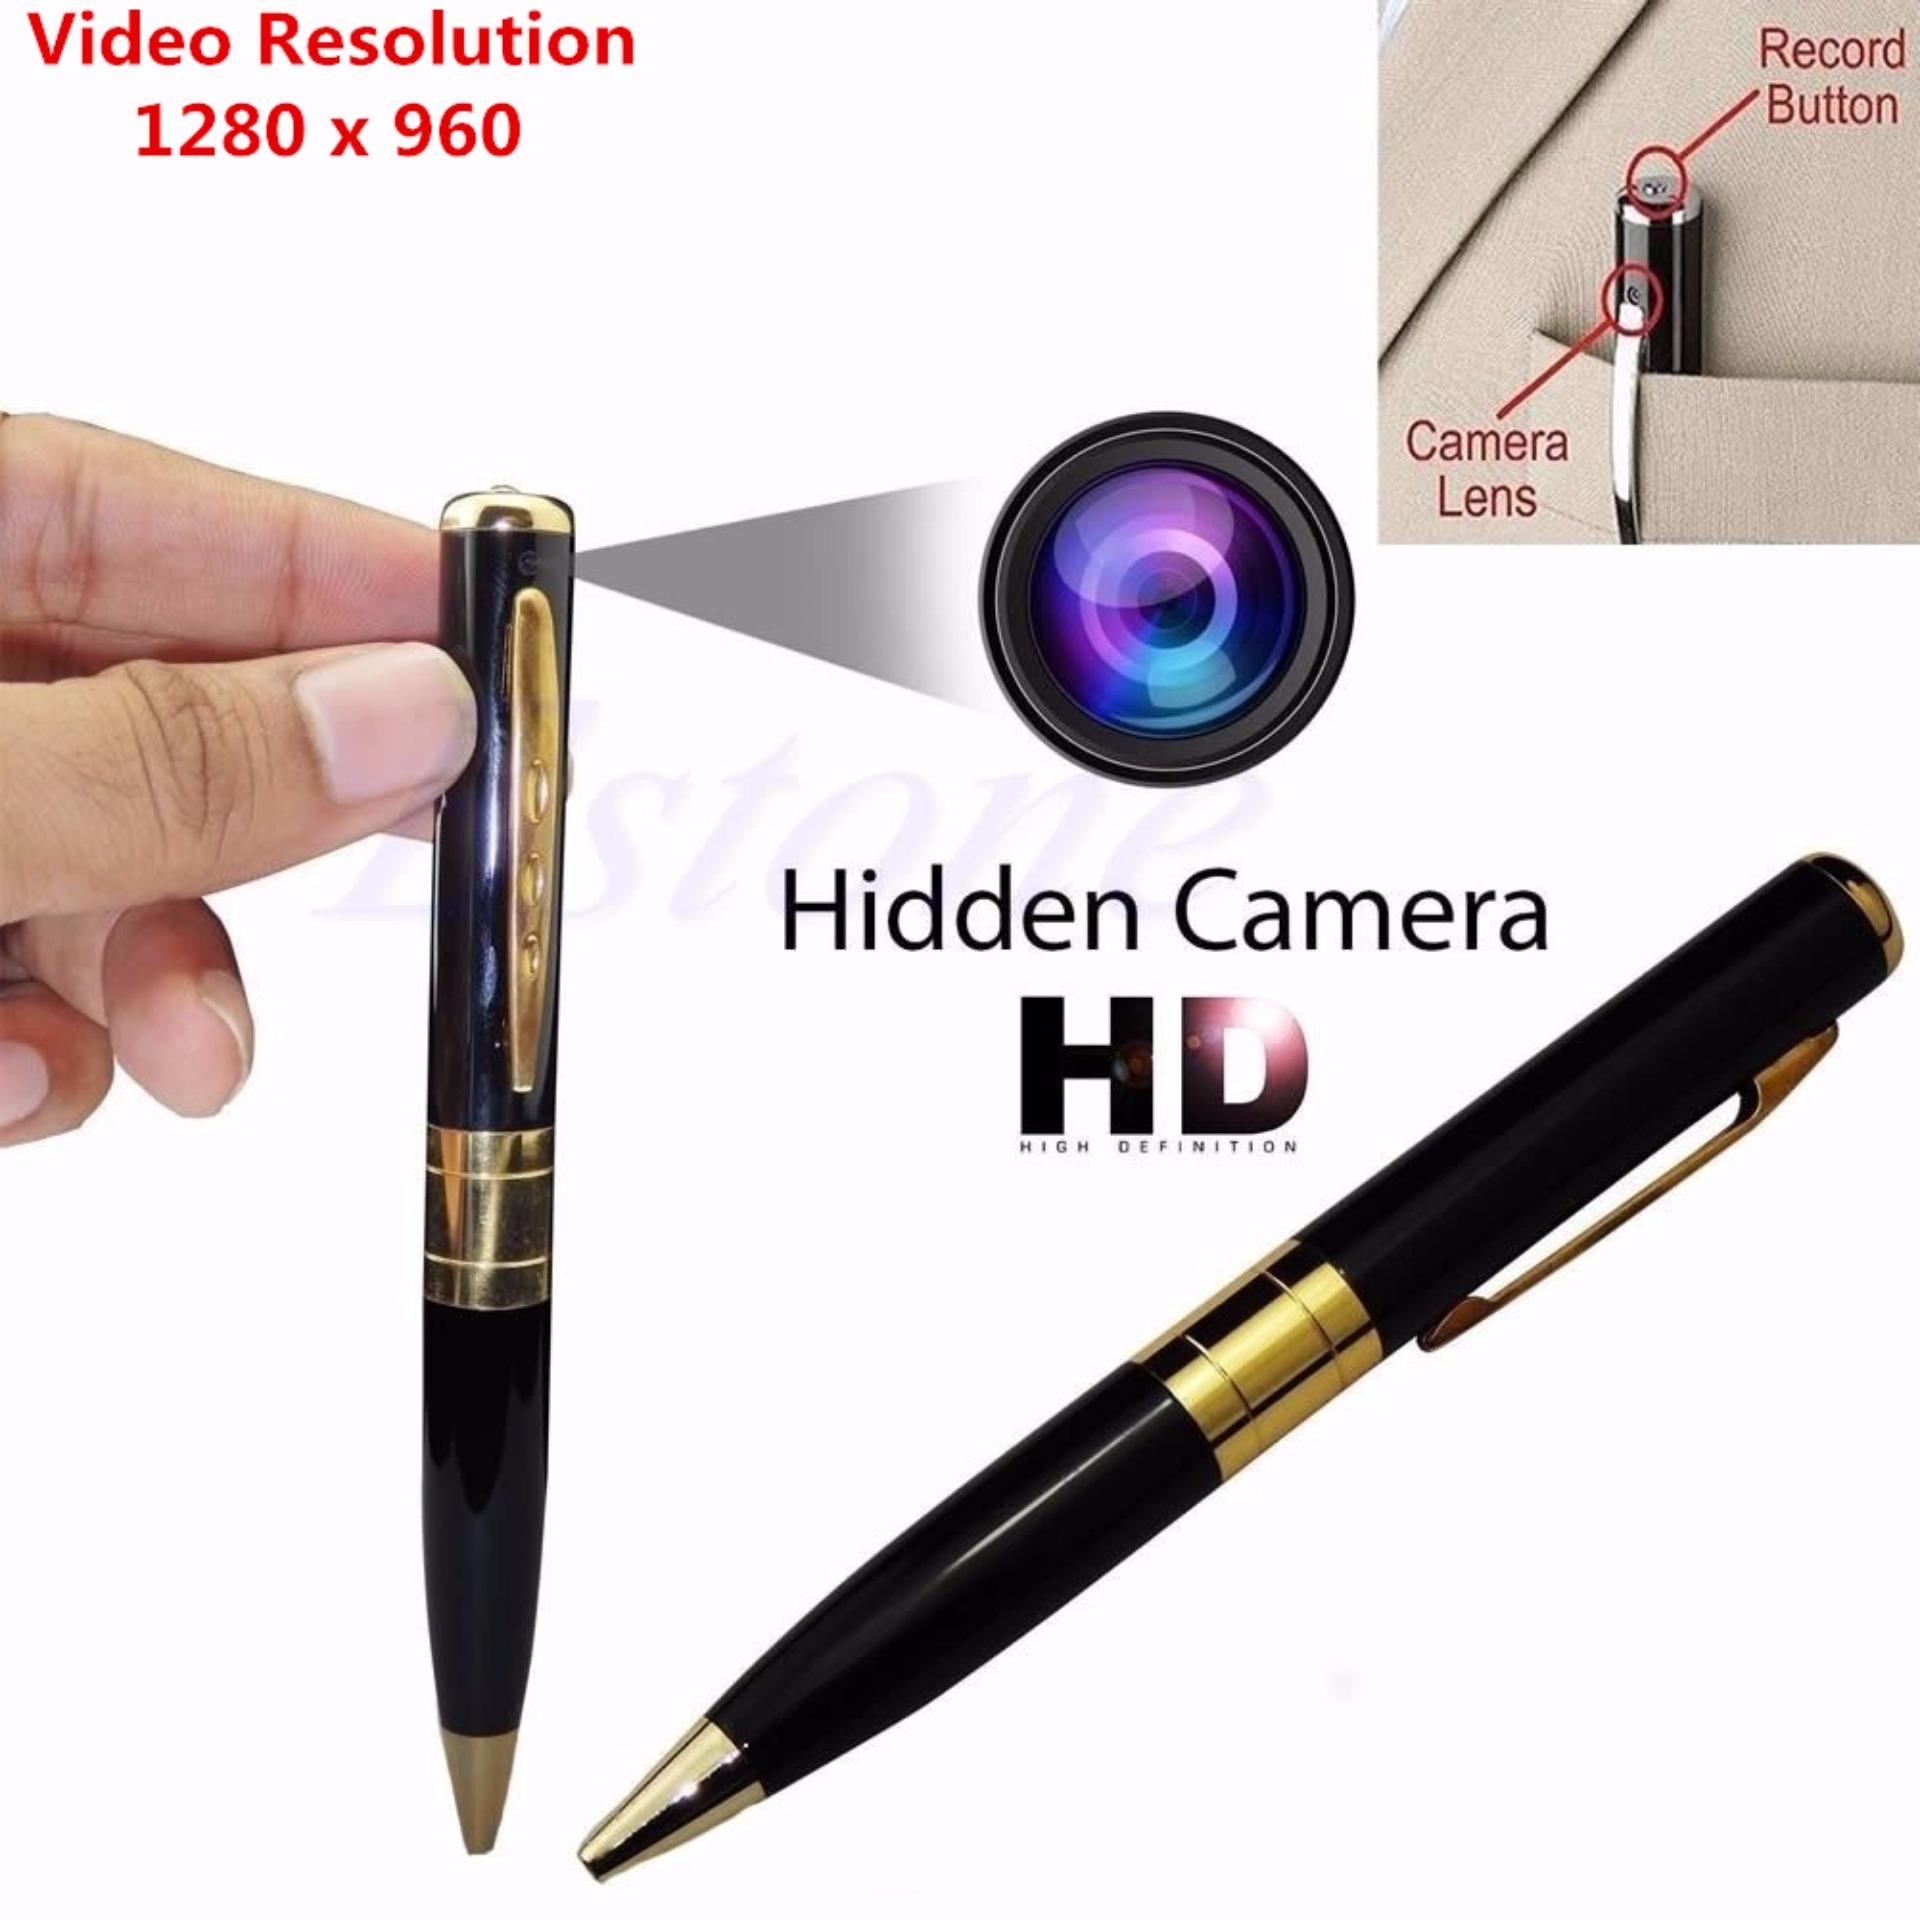 LGDS Black Mini HD USB DV Camera Pen Recorder Security DVR Cam Video 1280x96 for Monitoring and Capturing Any Situation - intl